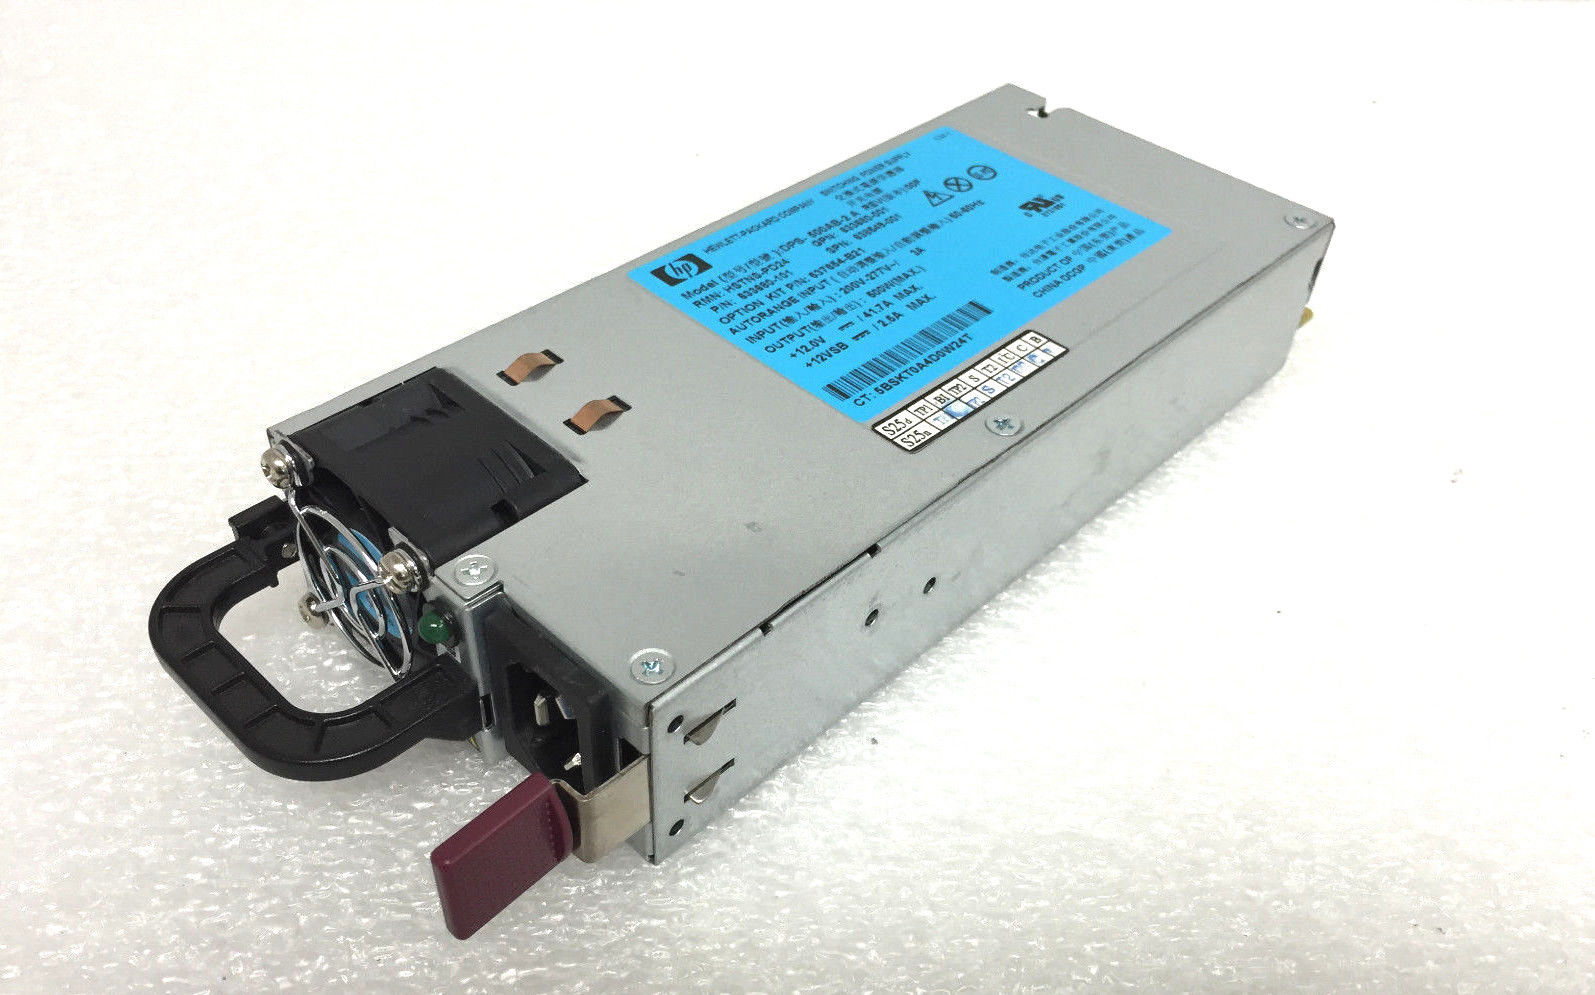 HP Proliant DL G7/G8 Series 500W Power Supply (638549-001)